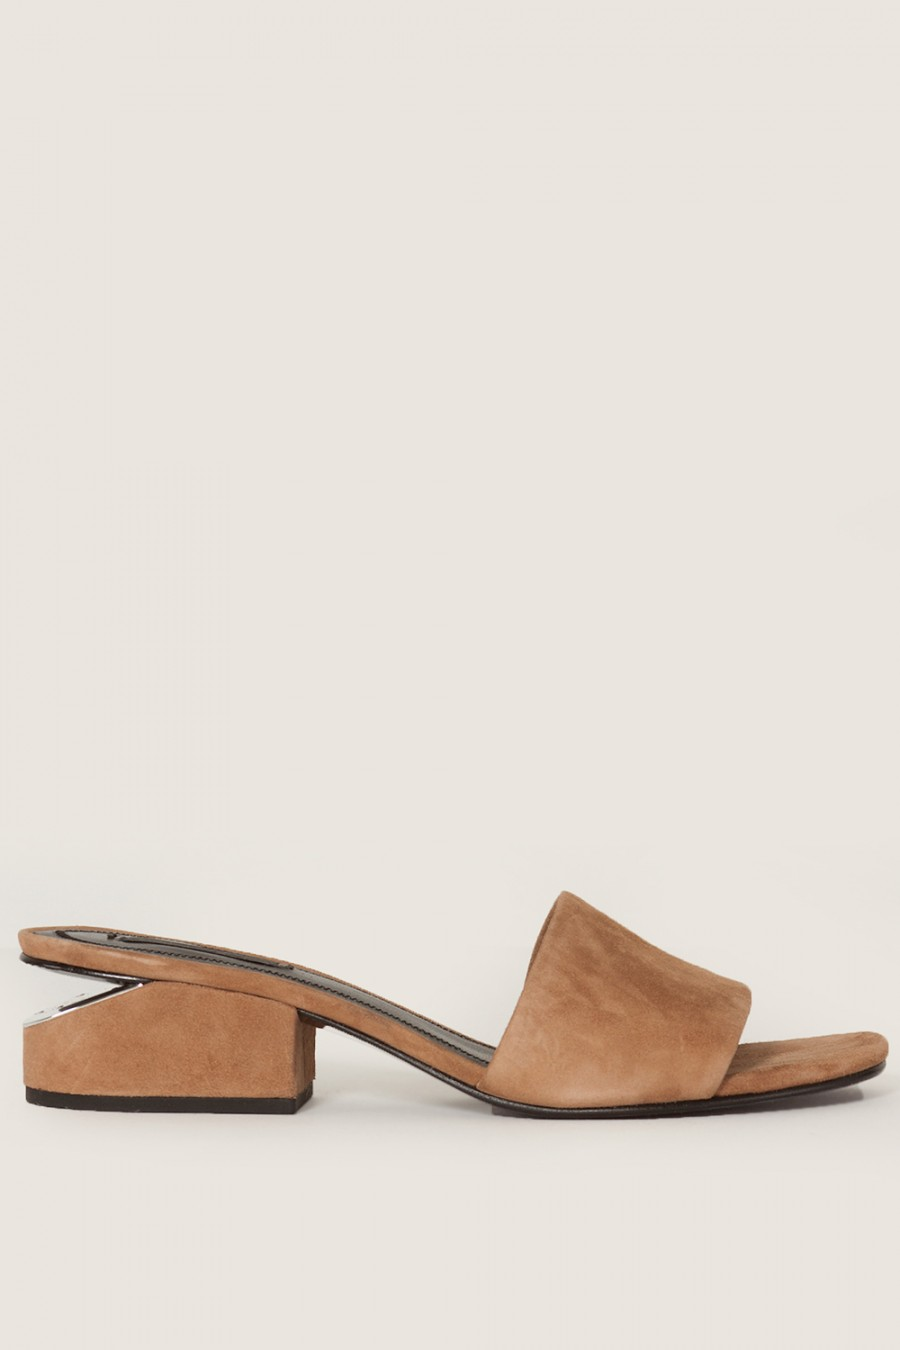 ALEXANDER WANG Lou Suede Sandal With Rhodium - Camel at MADISON LOS ANGELES